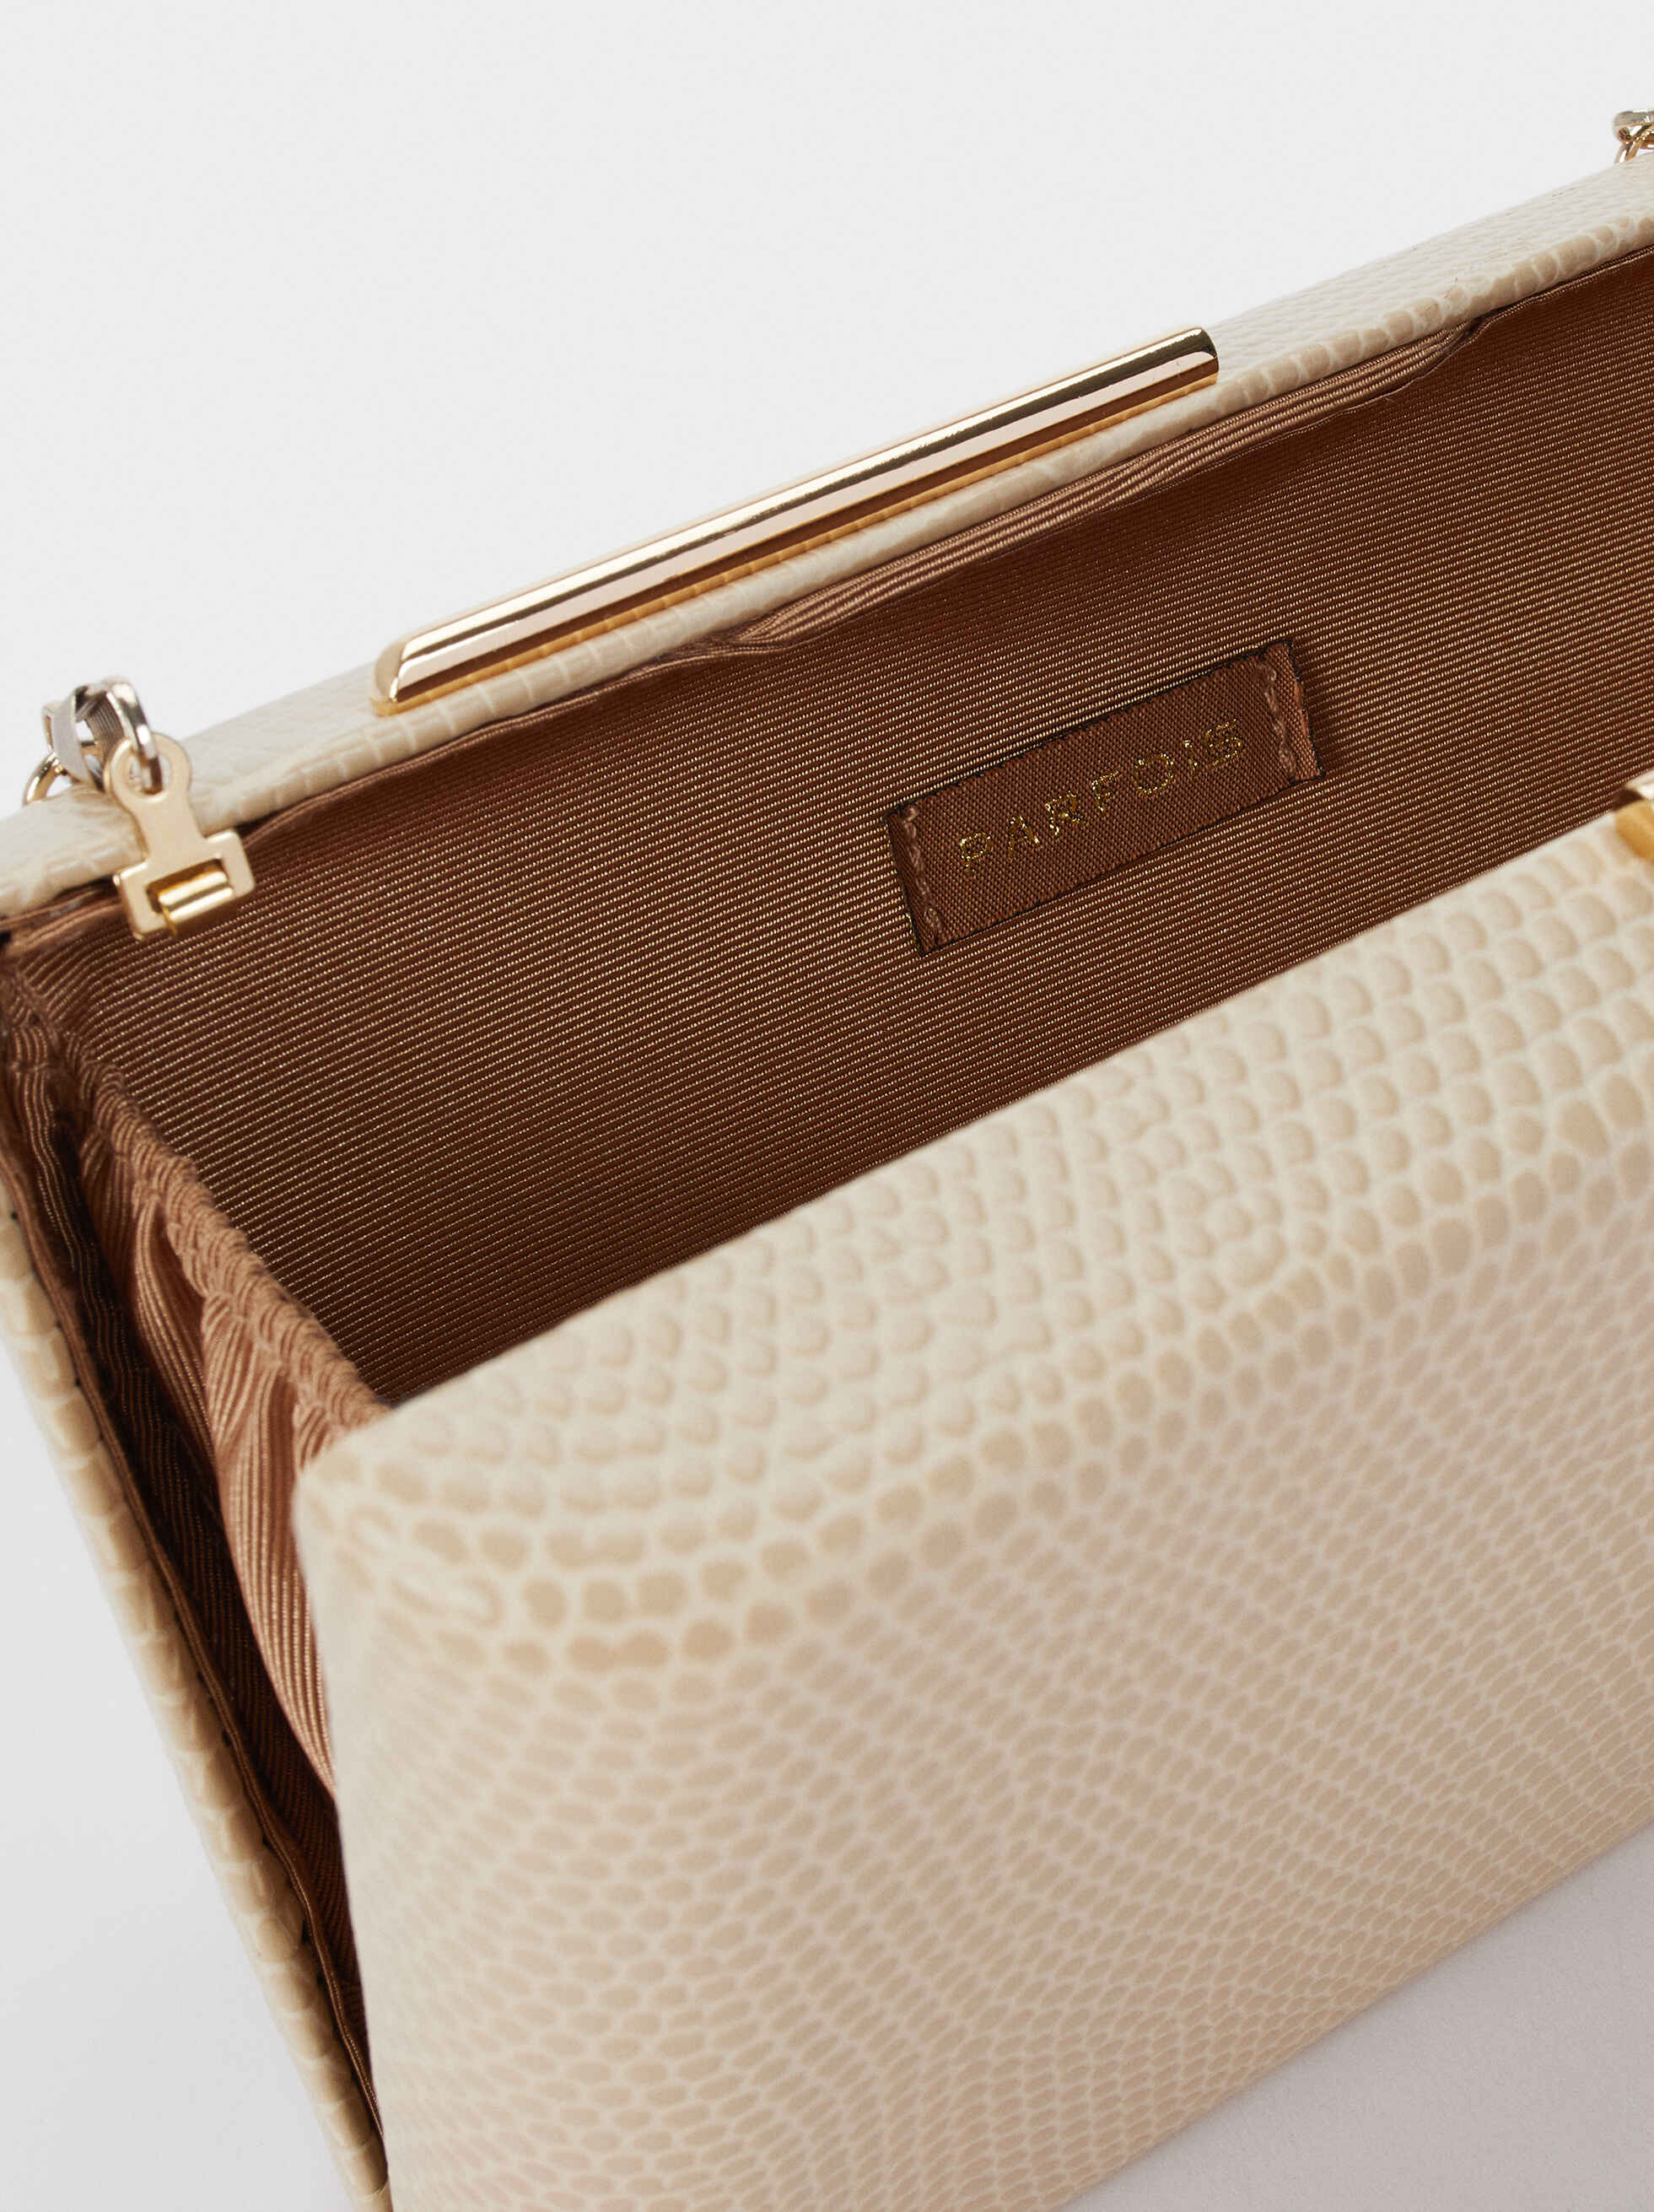 Embossed Animal Print Clutch, Beige, hi-res